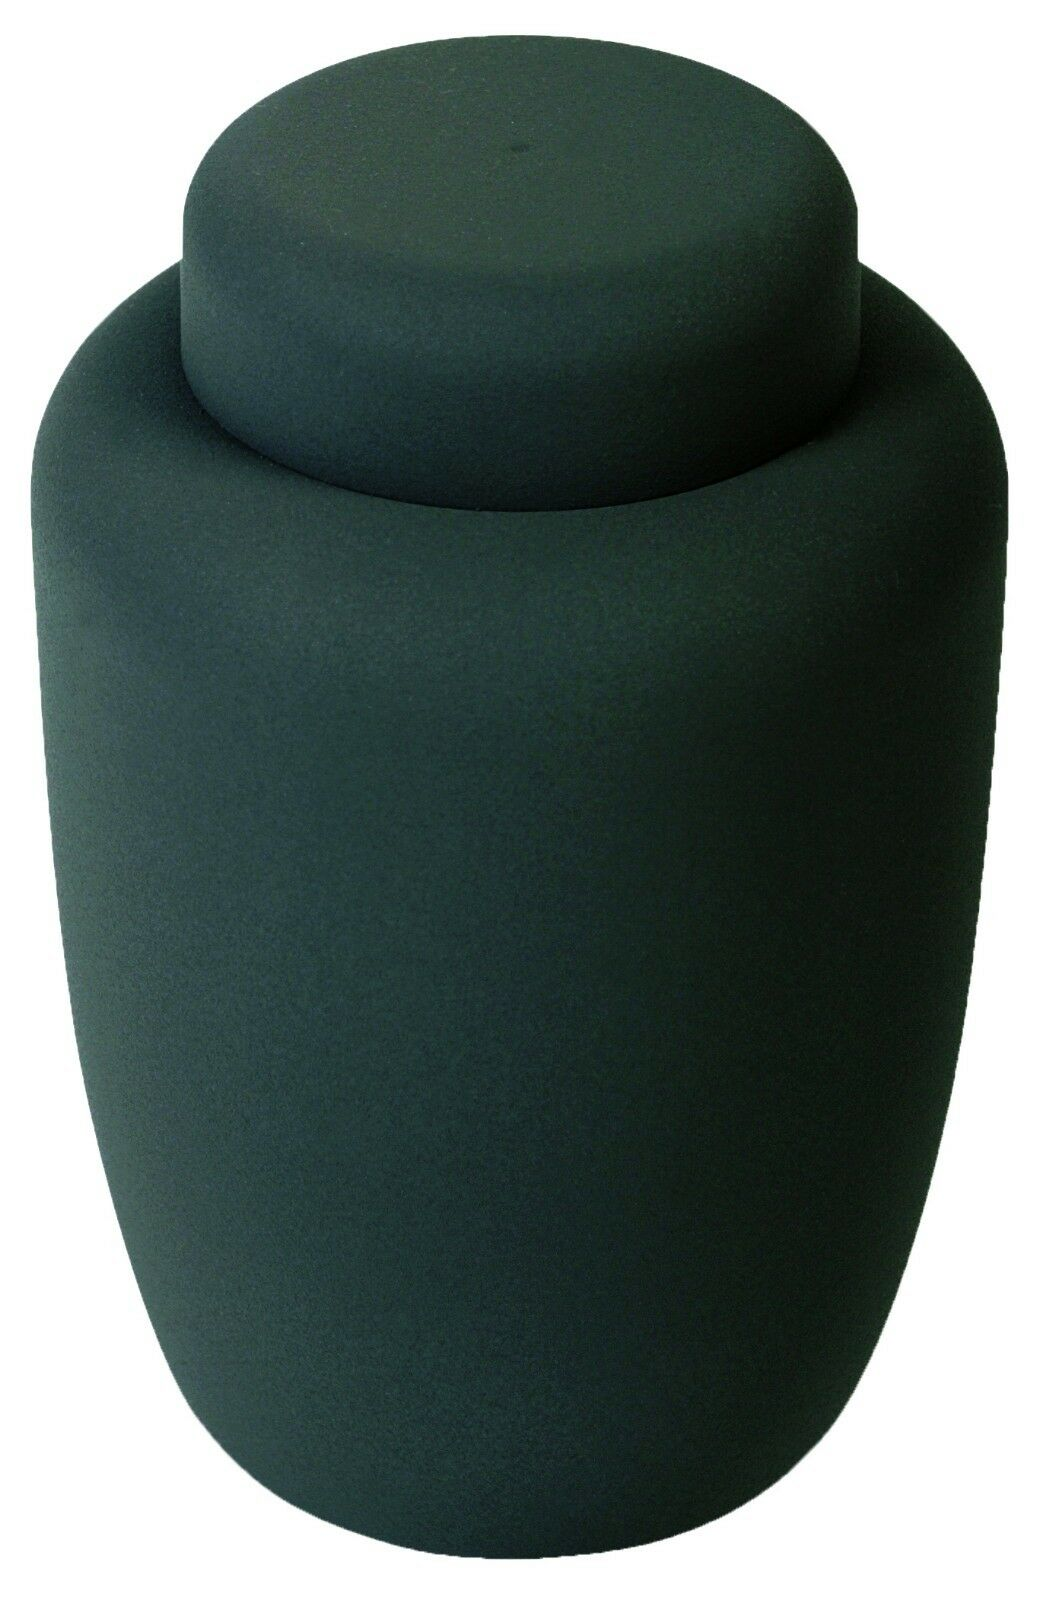 Black Cornstarch 238 Cubic Inches Large/Adult Funeral Cremation Urn for Ashes